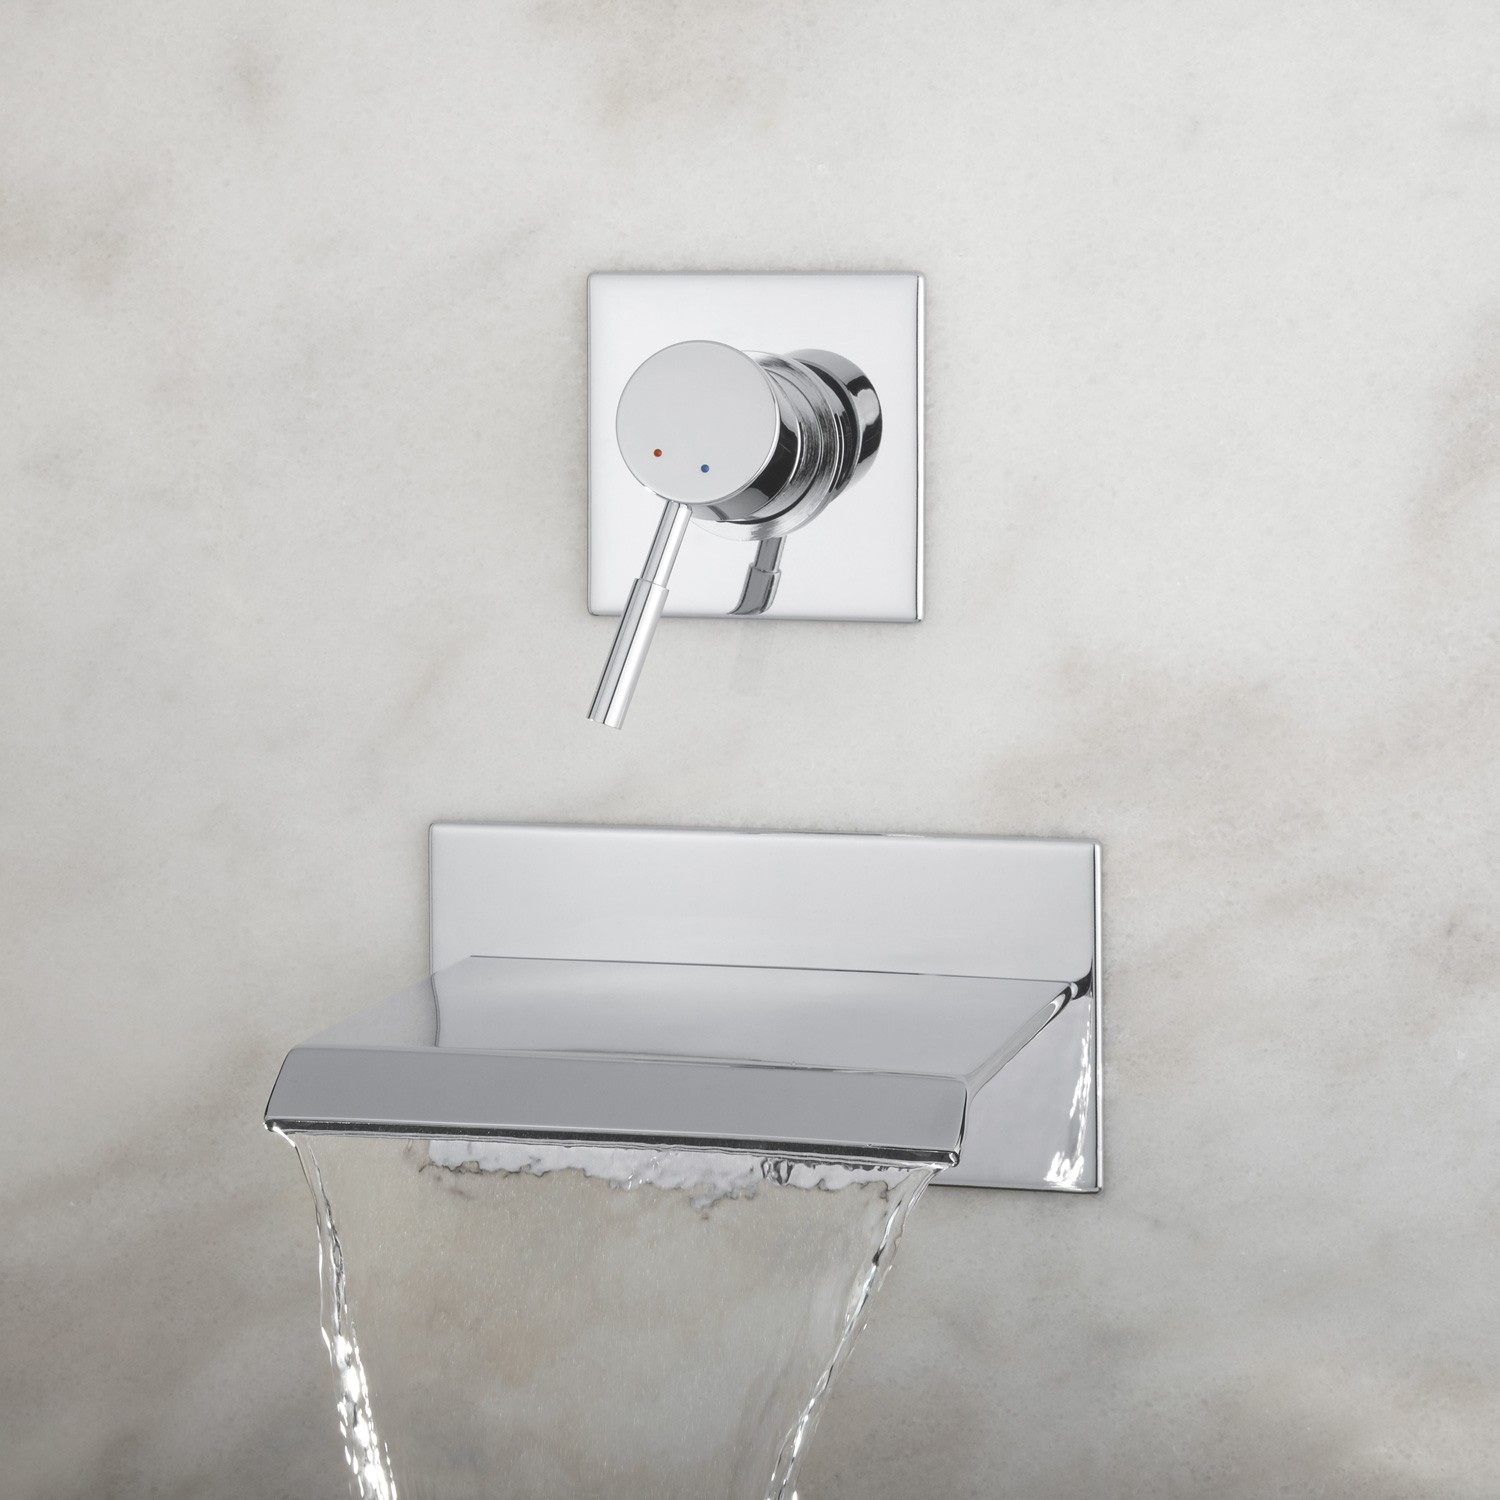 Ideas, bathroom ergonomic wall mount roman tub faucet with hand shower for measurements 1500 x 1500  .